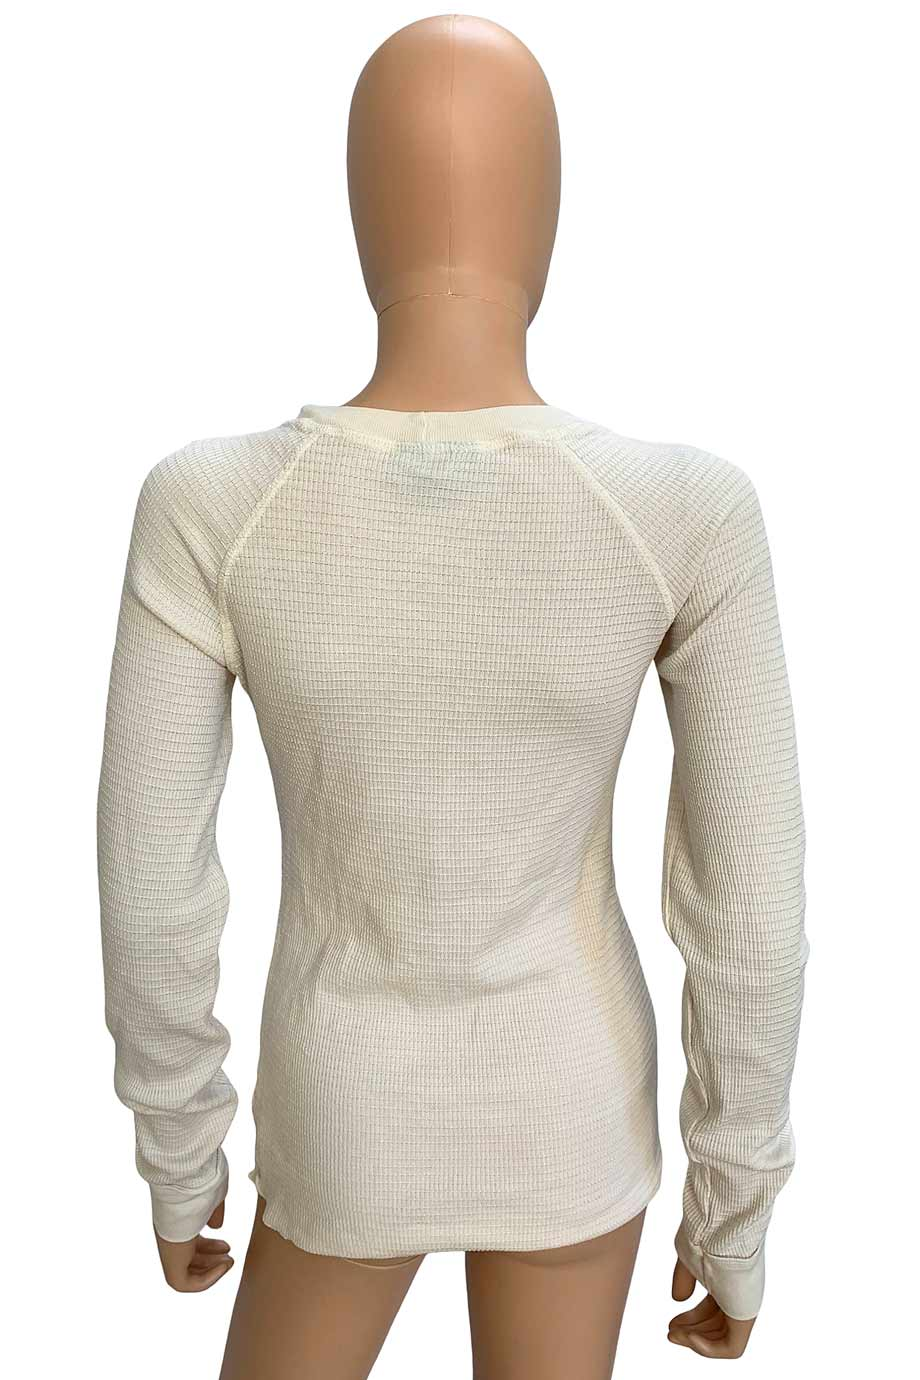 Athleta Ivory Tonal Stripe Rib Knit + Crest Print Long Sleeve Top / Sz M